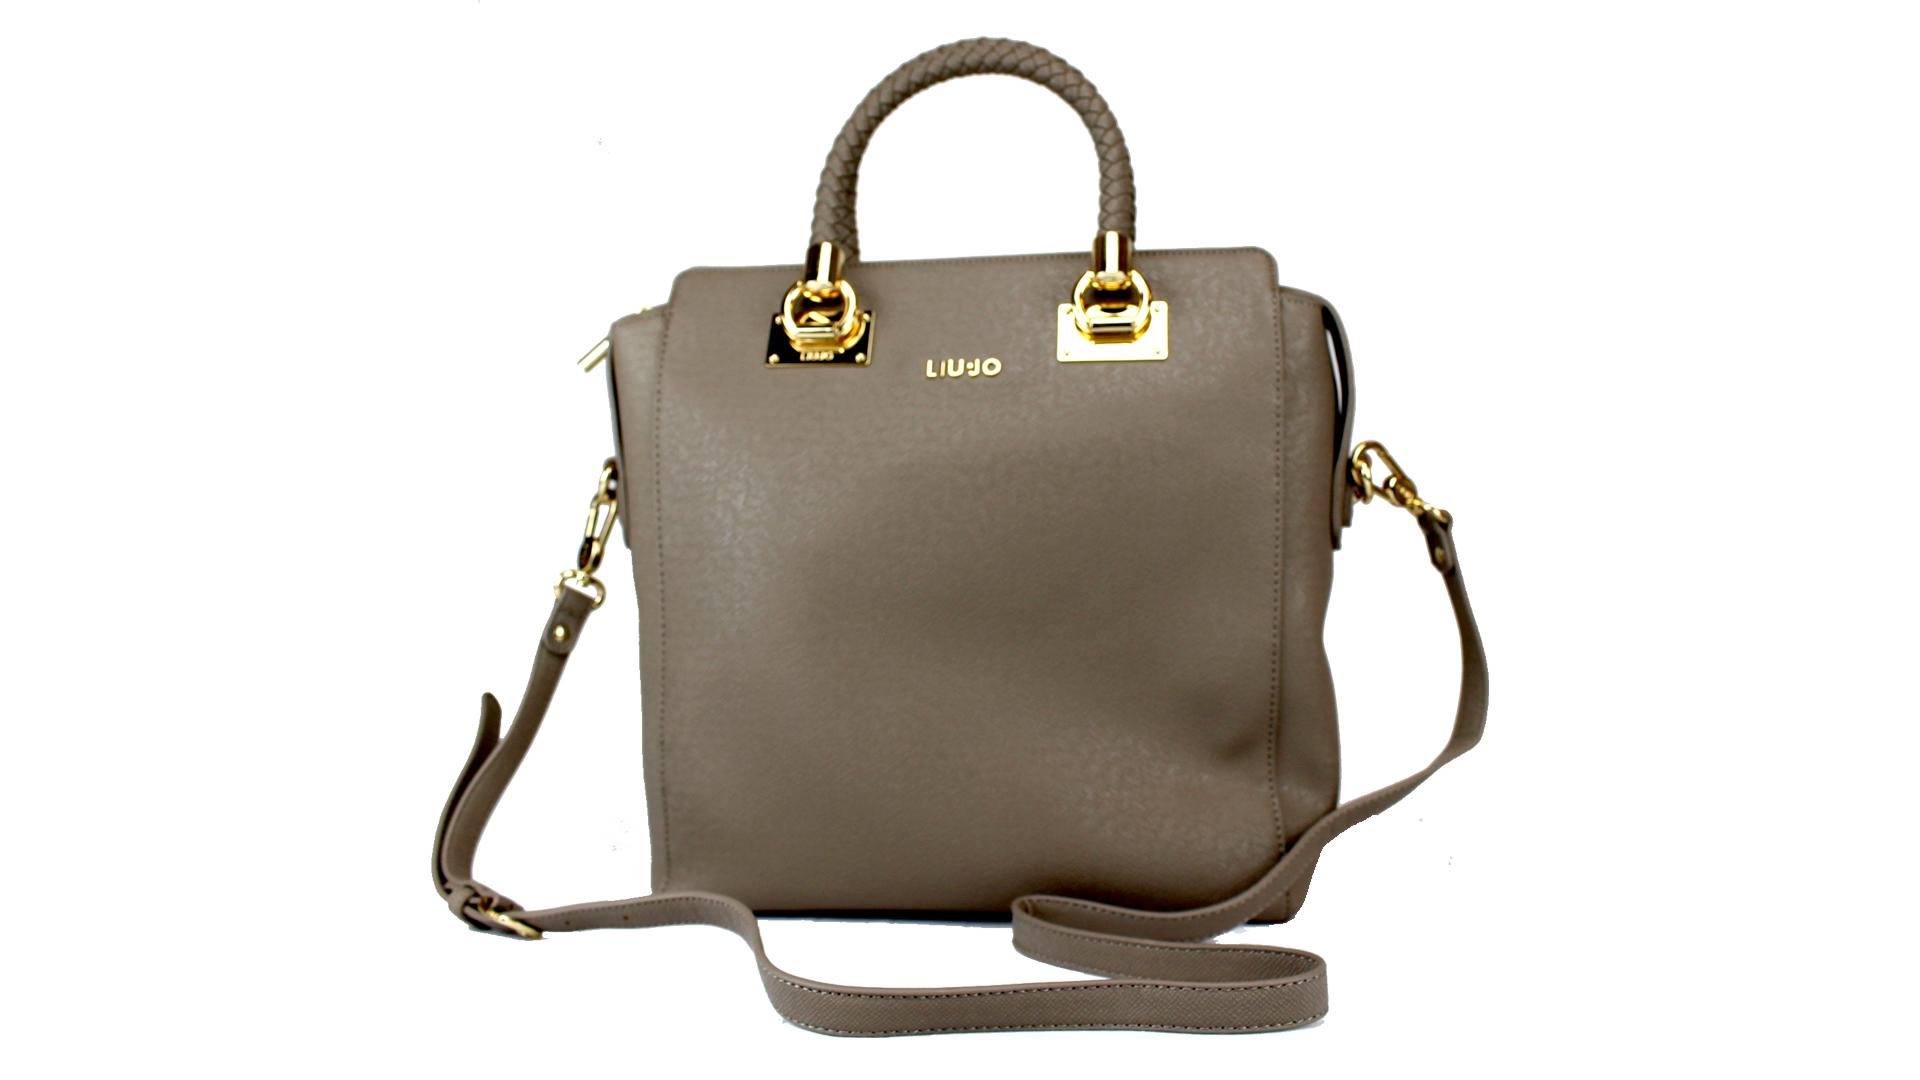 Hand and shoulder bag  Liu Jo Anna N65088 E0087 TORTORA